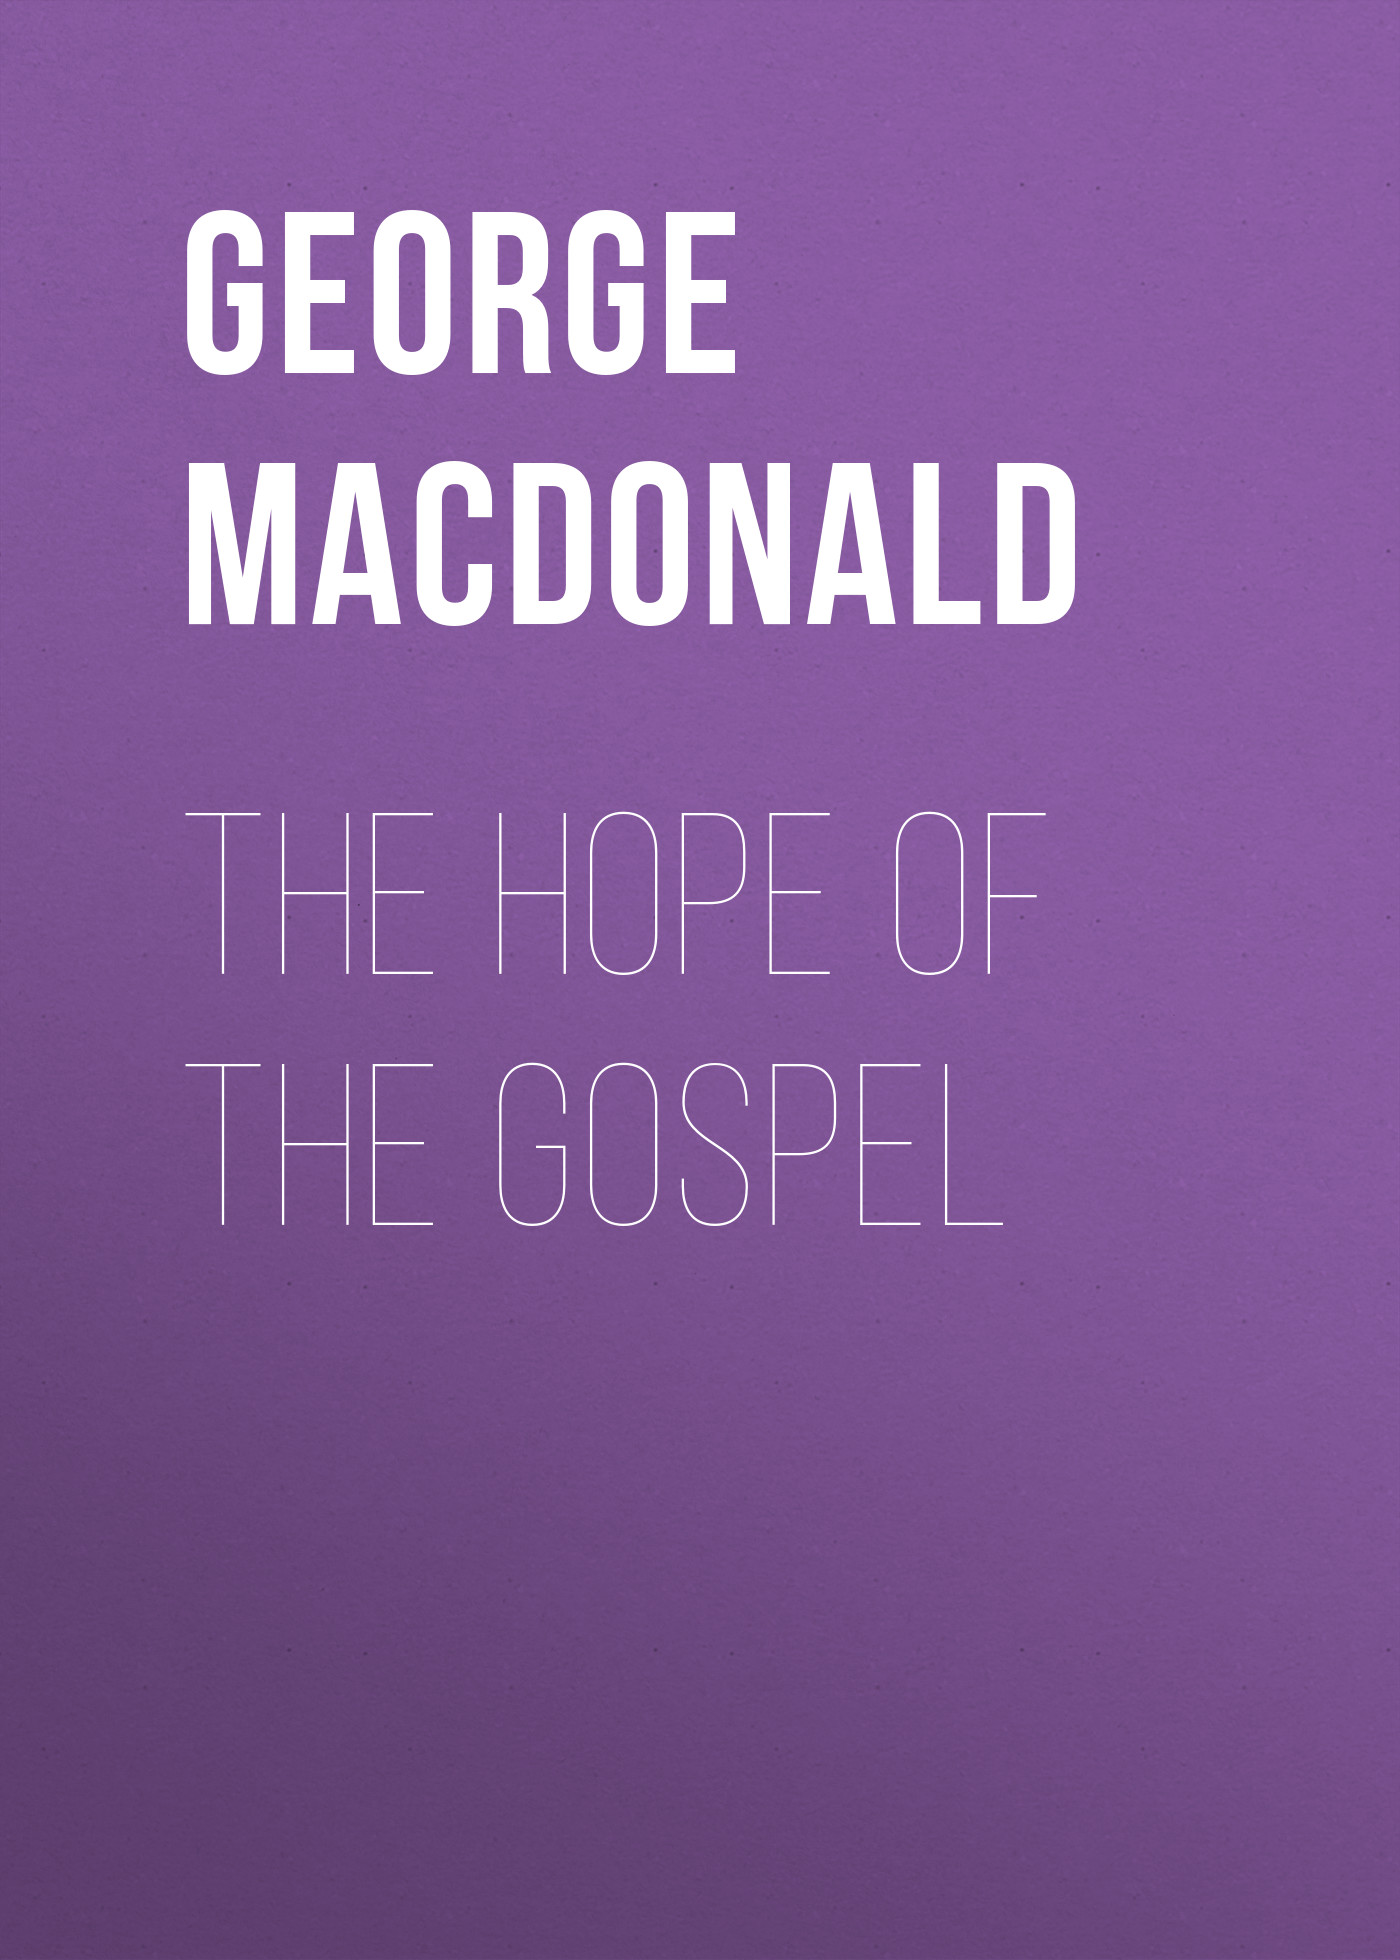 George MacDonald The Hope of the Gospel george macdonald the seaboard parish volume 1